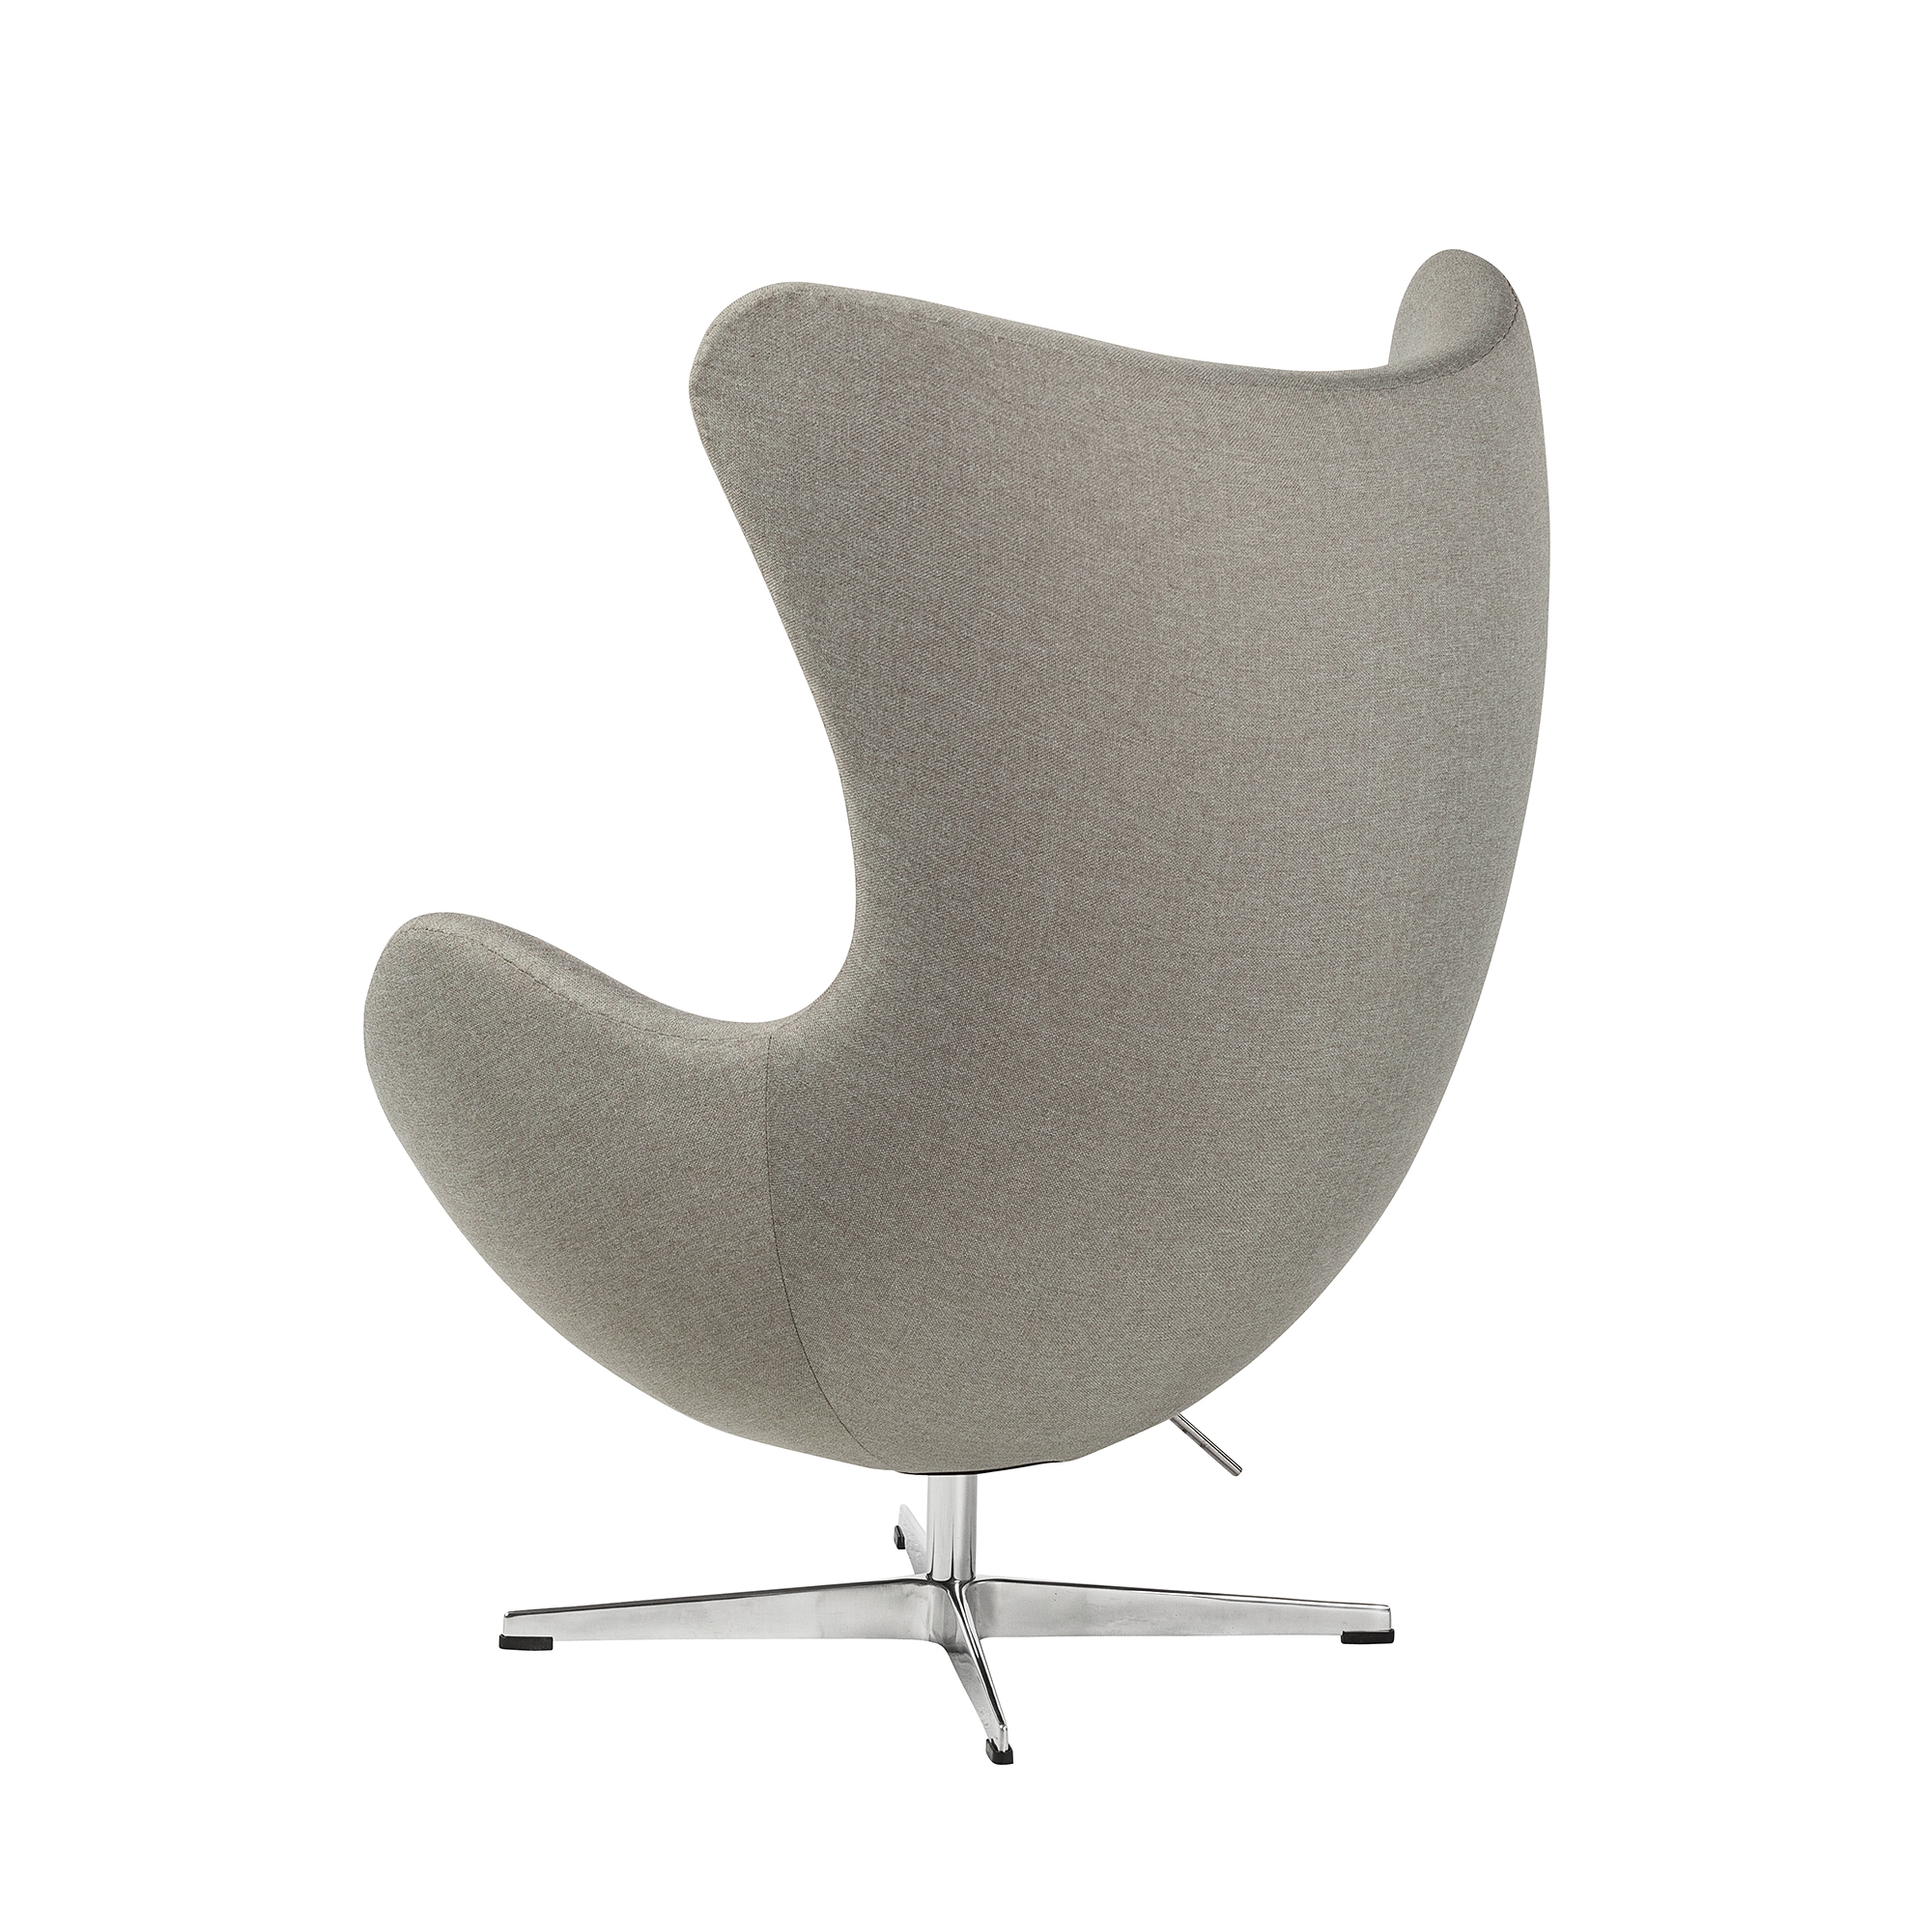 Arne Jacobsen Inspired Egg Swivel Chair